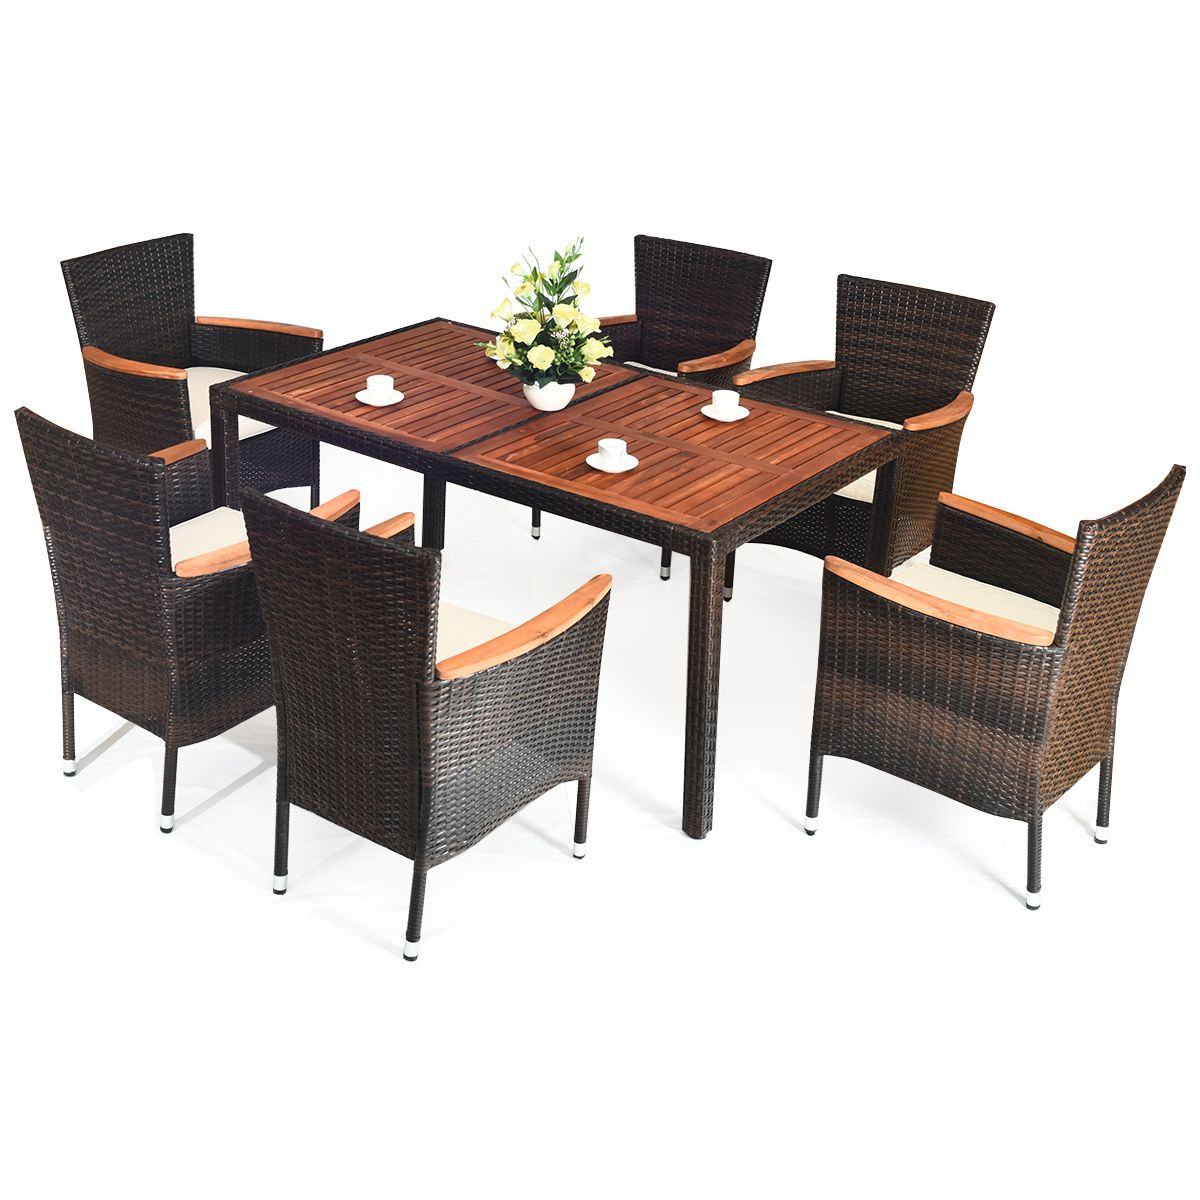 Costway 7pcs Patio Rattan Dining Set 6 Stackable Chairs Cushioned Walmart Canada In 2020 Patio Dining Set Garden Dining Set Patio Dining